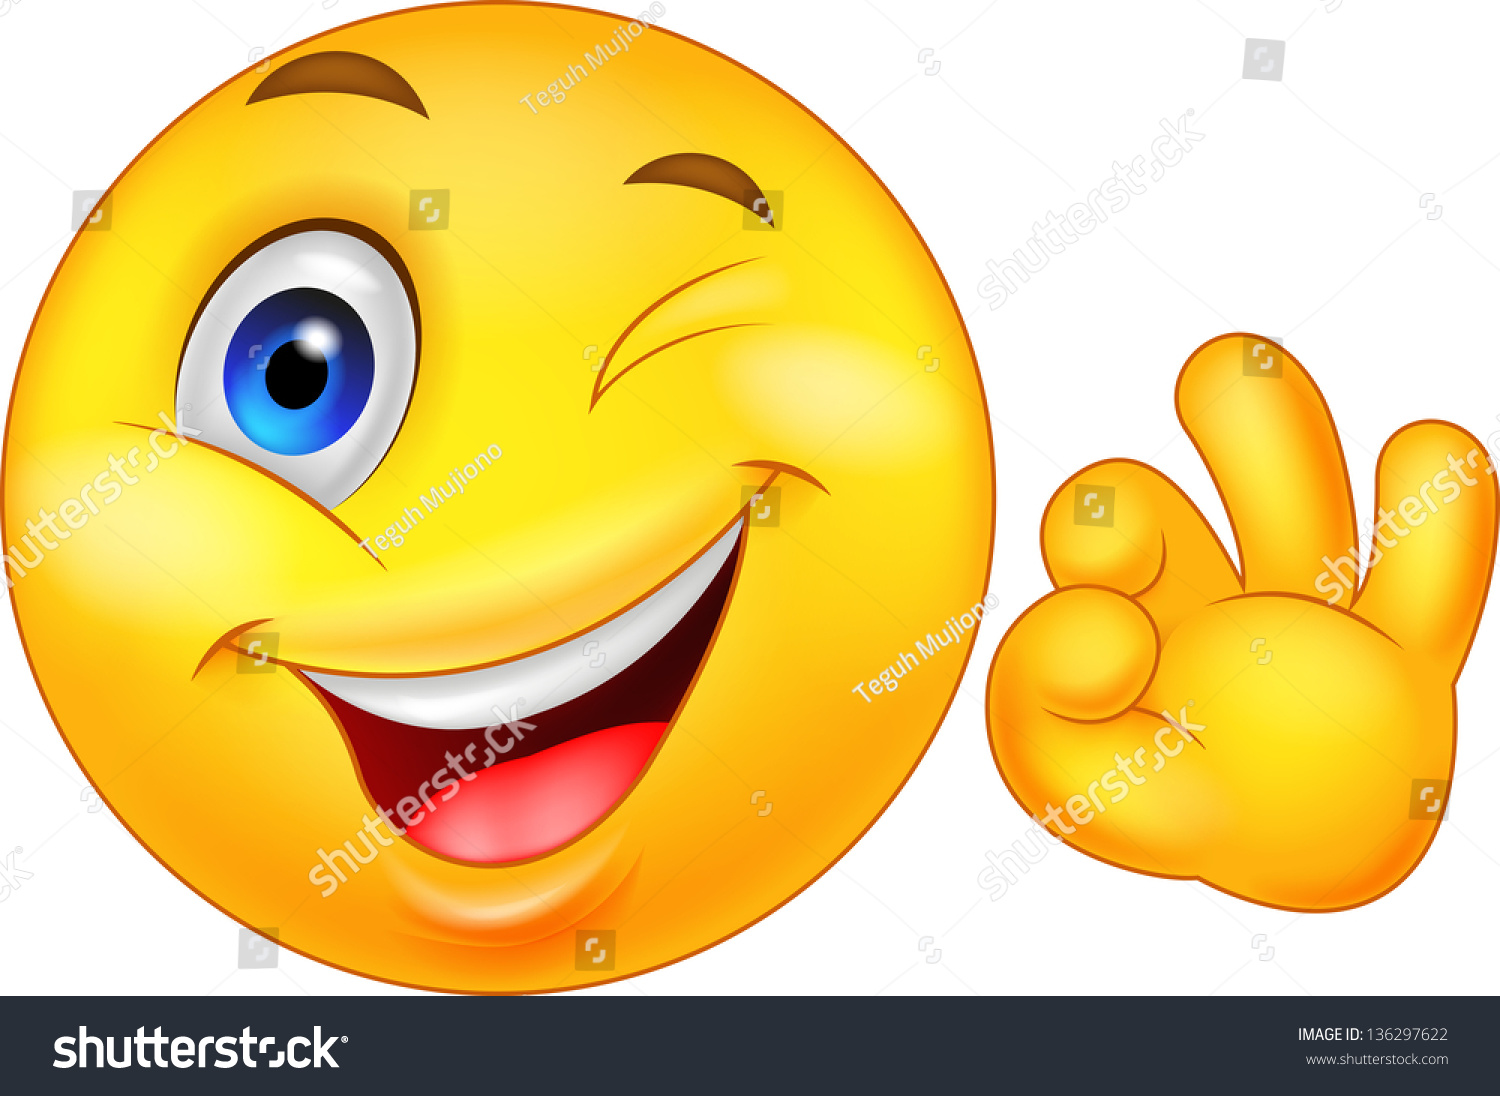 smiley emoticon ok sign stock vector 136297622 shutterstock smiley face vector art smiley face vector png